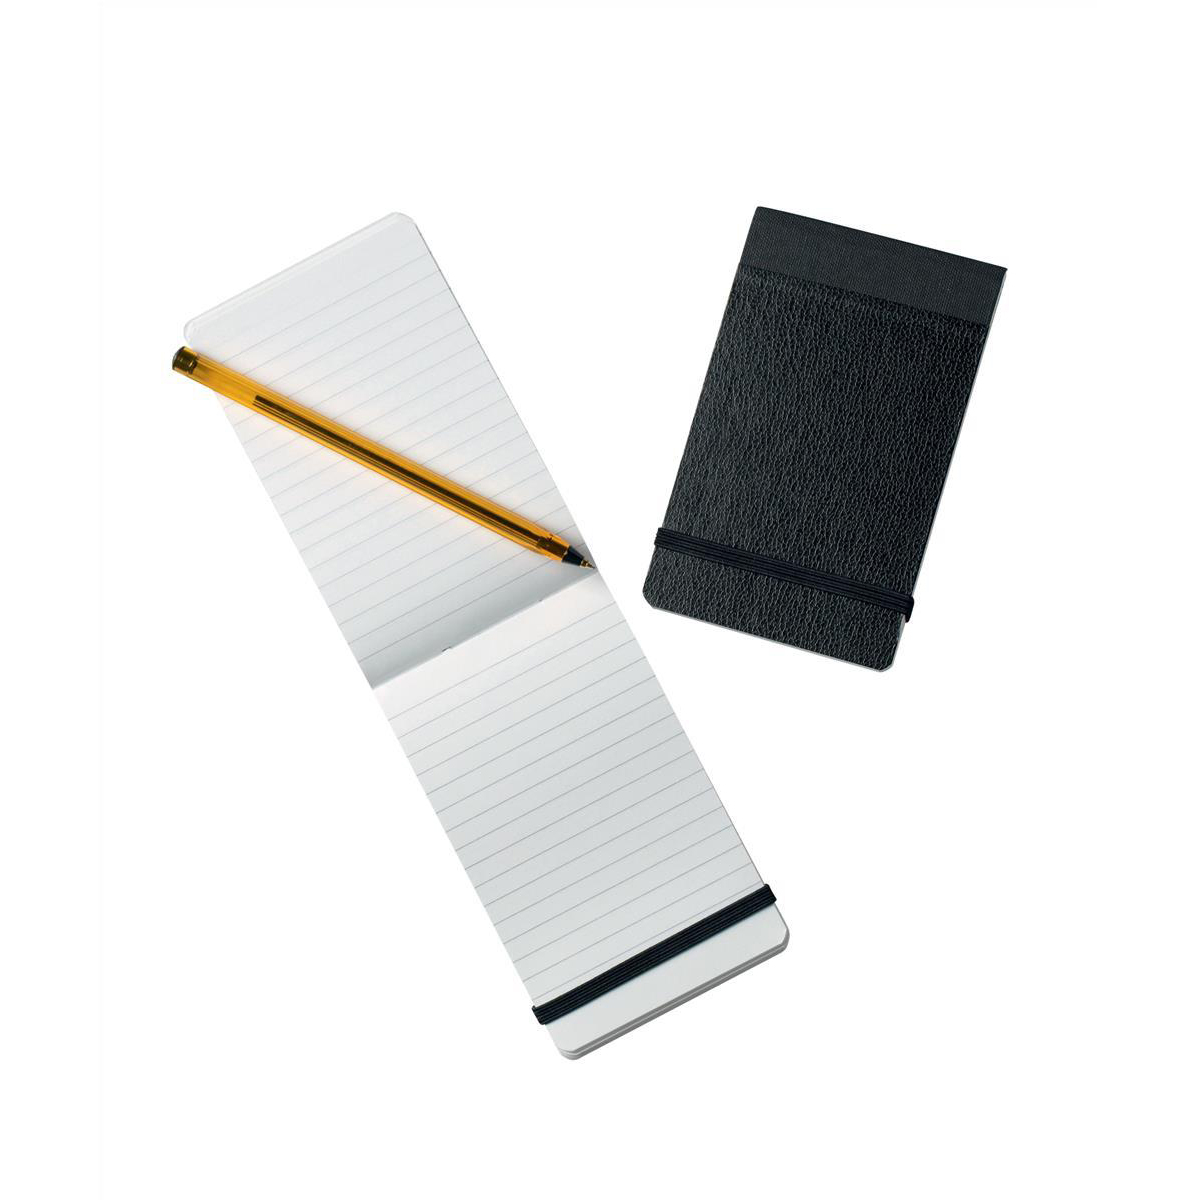 Books & Pads Other